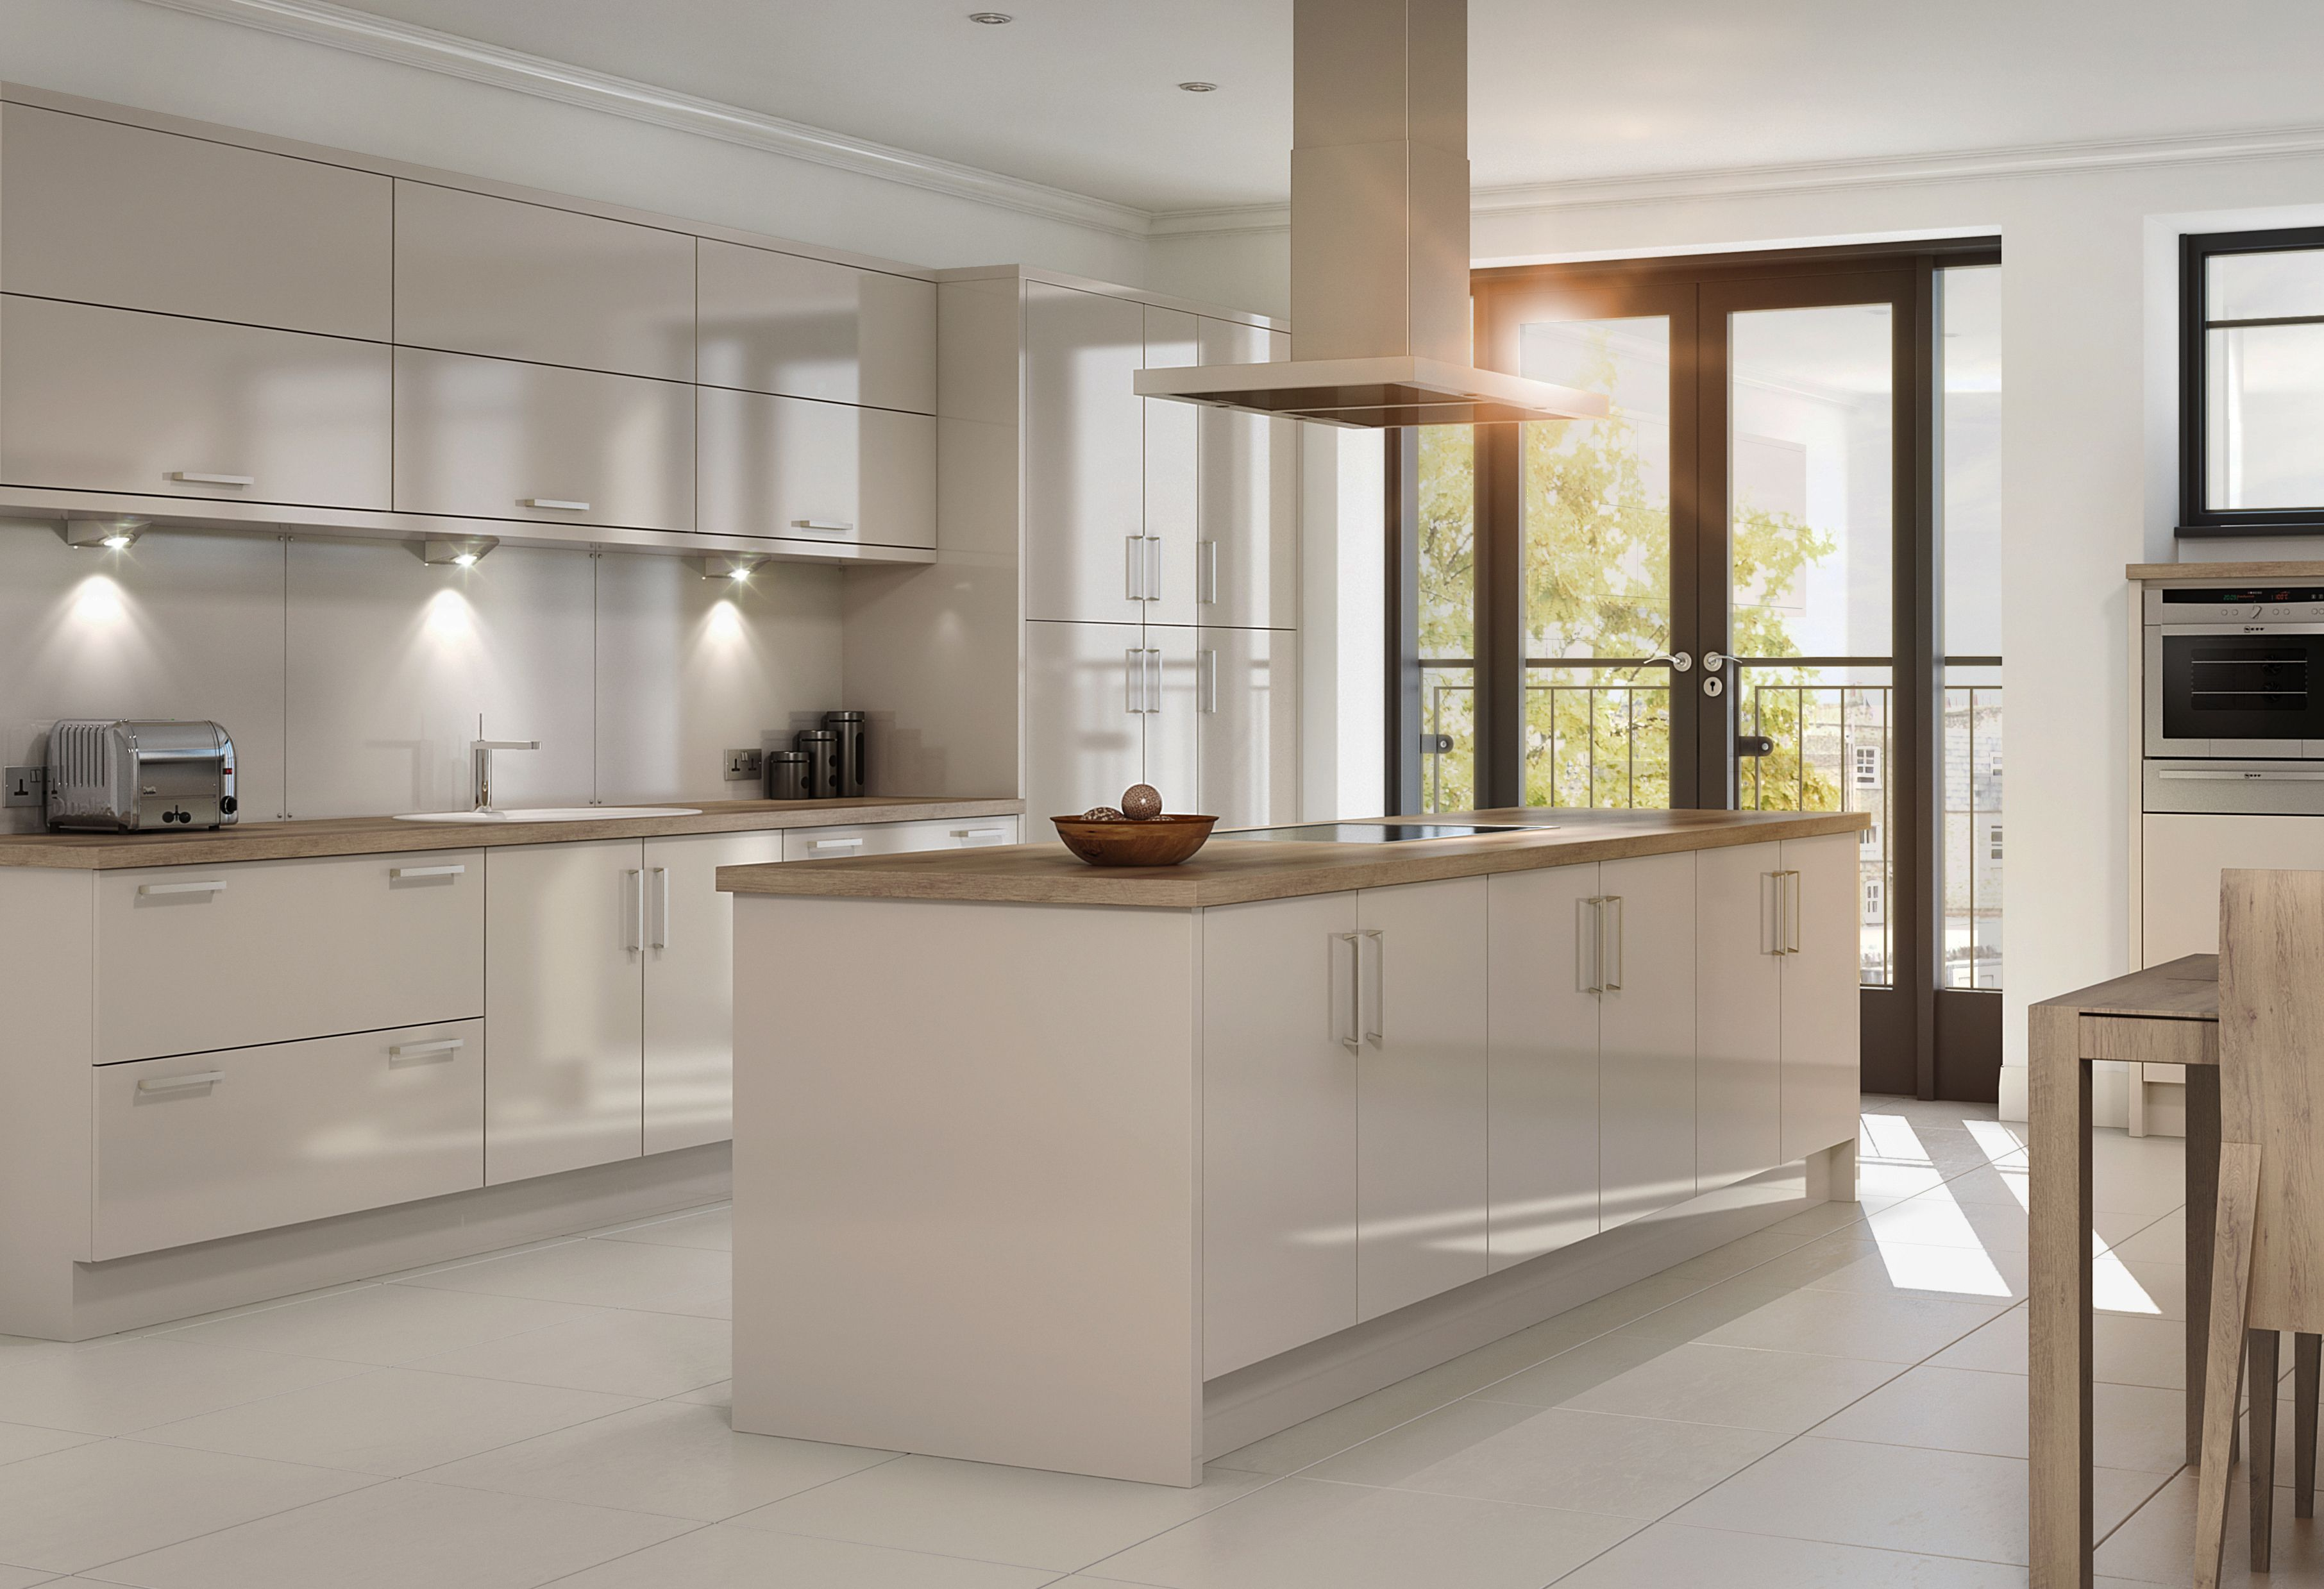 Stunning Bristol Fitted Kitchens Showroom in 2019